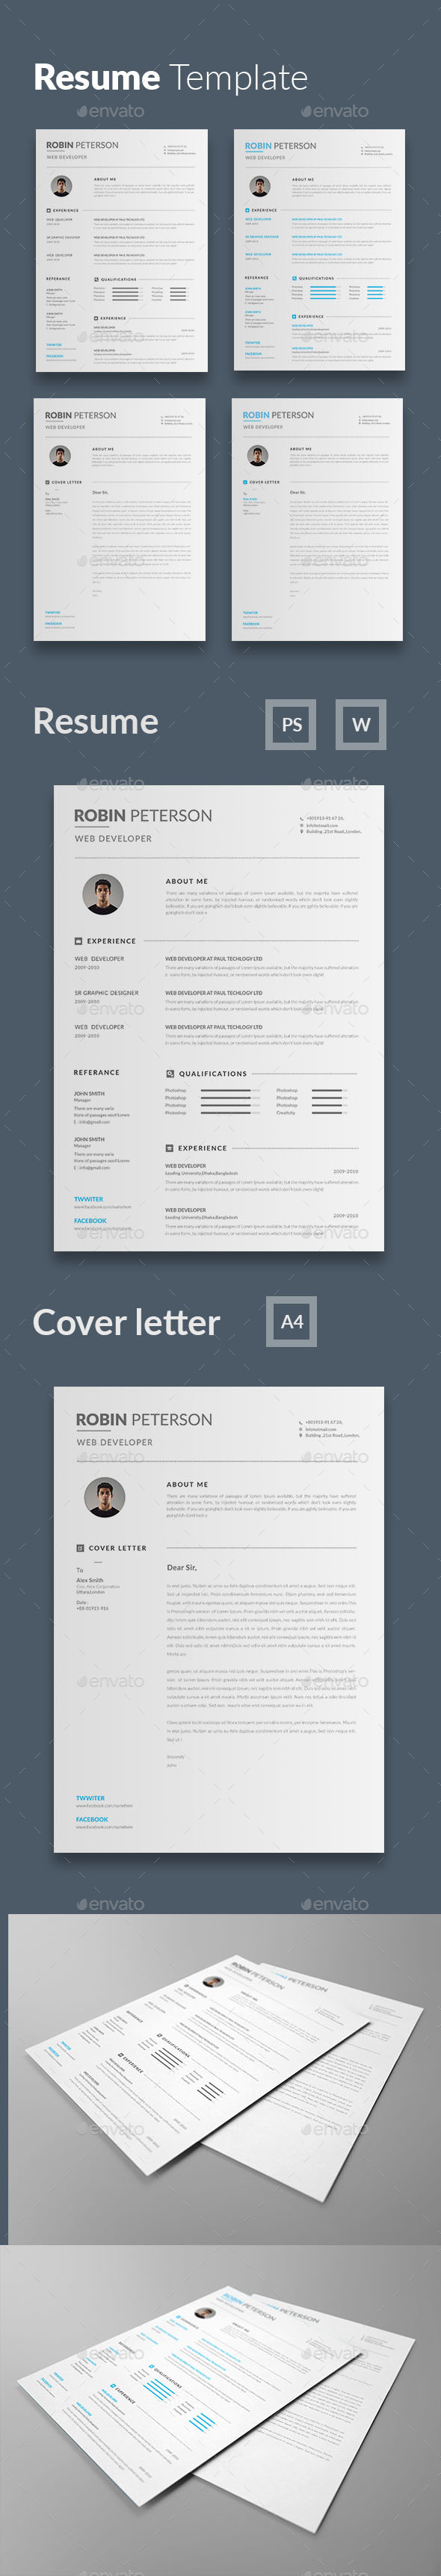 Resume - Resumes Stationery Download here: https://graphicriver.net ...